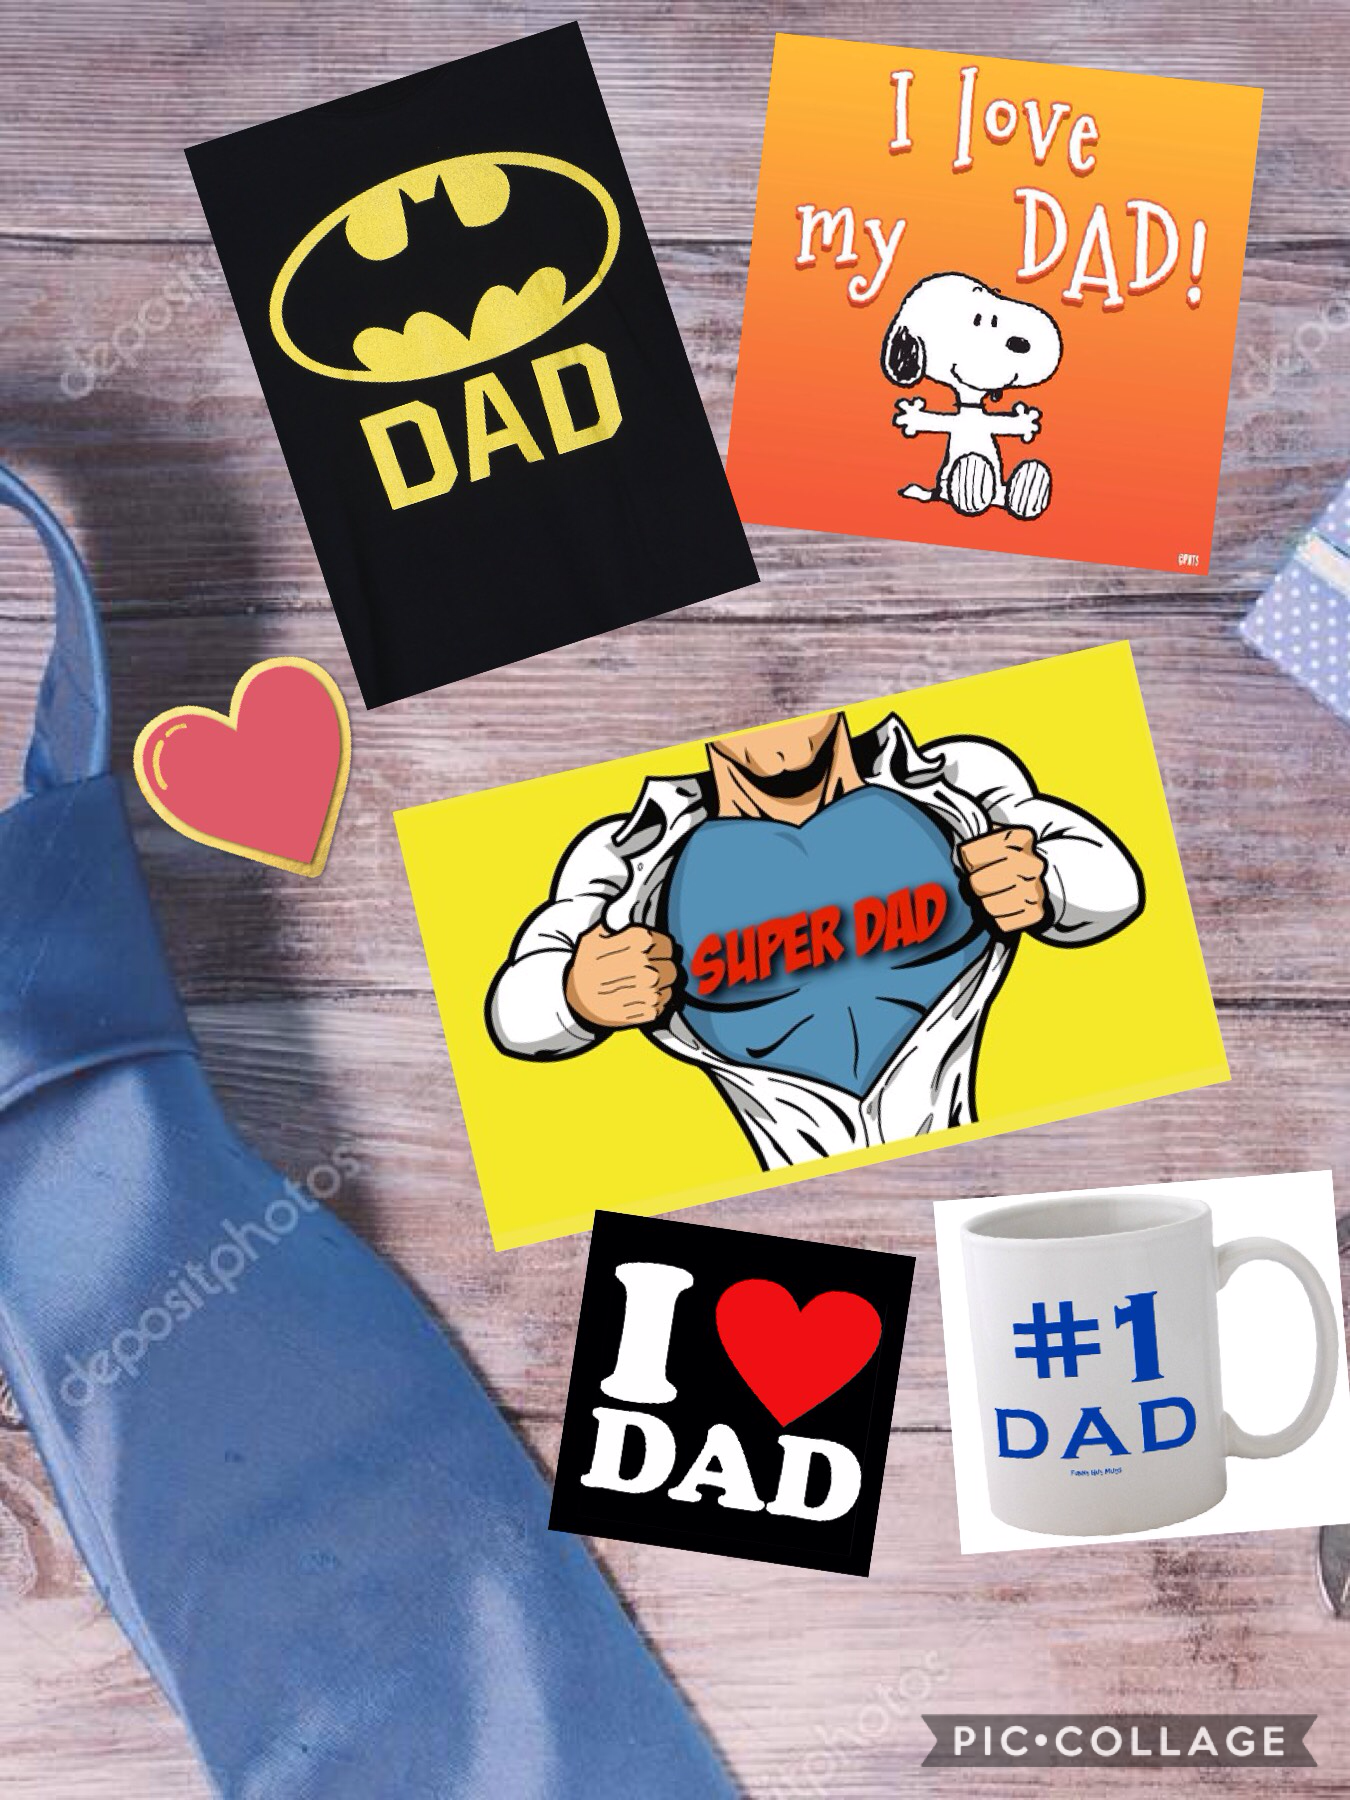 Father's Day coming up soon